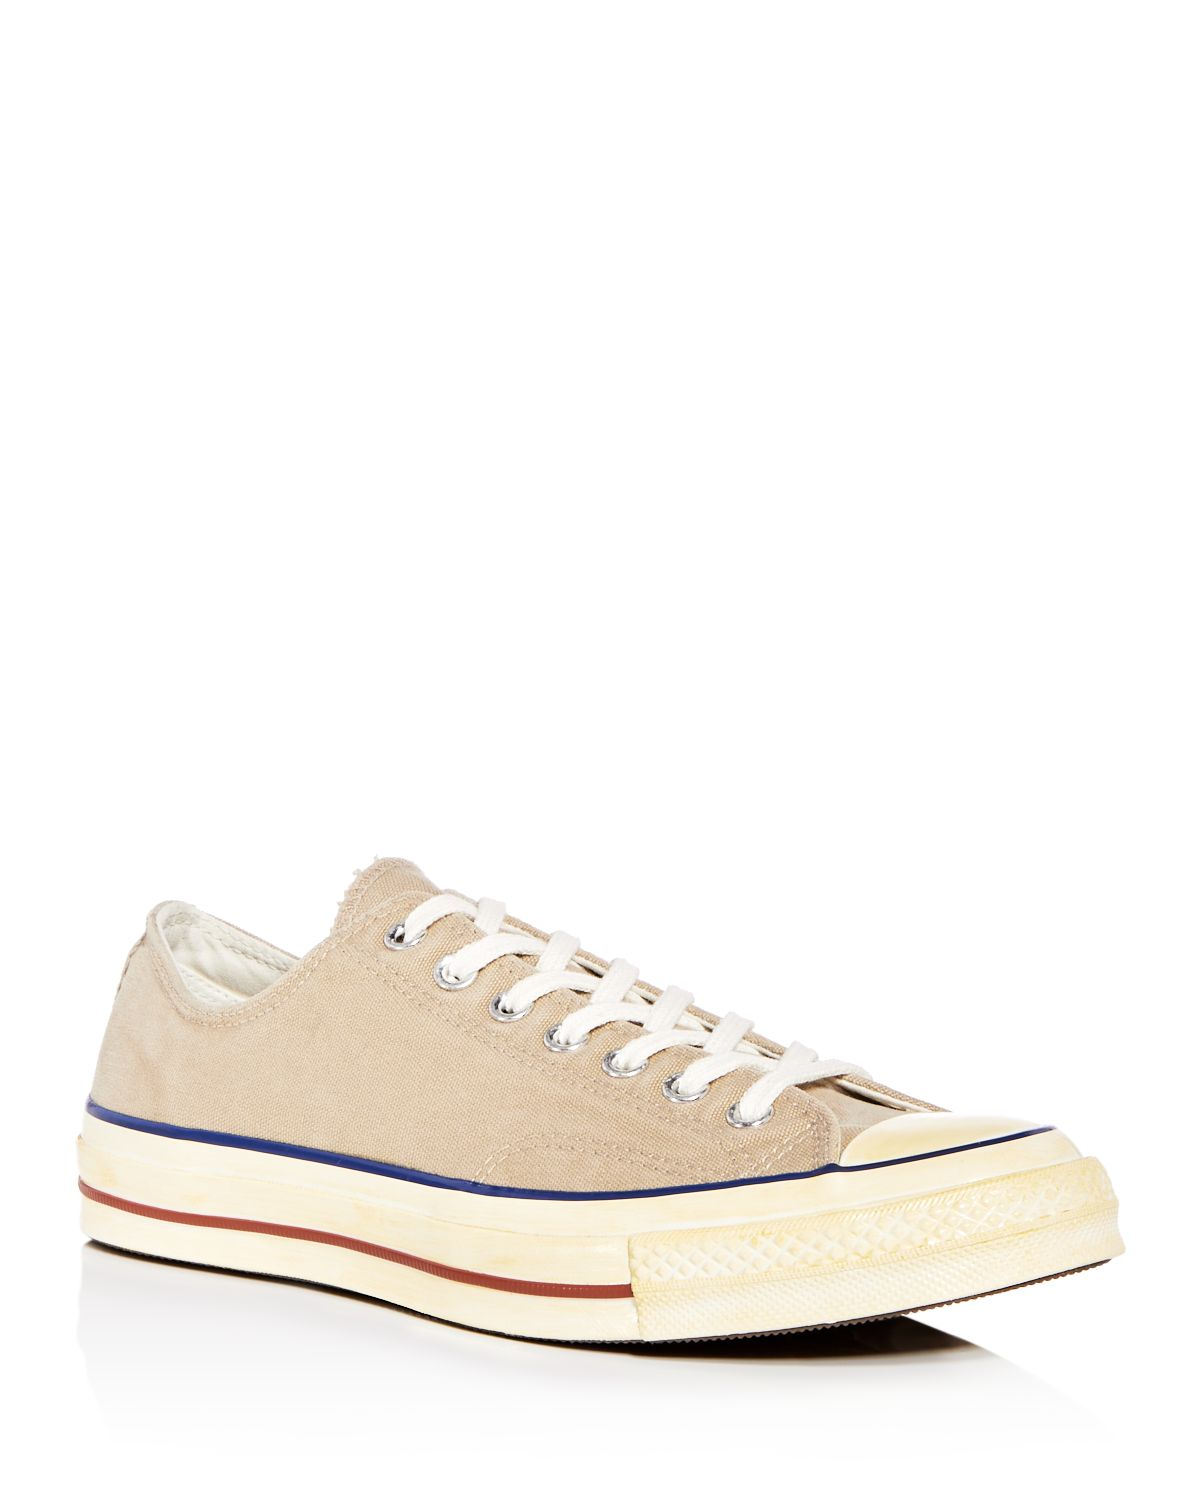 Converse Men's Chuck Taylor All Star '70 Lace Up Sneakers